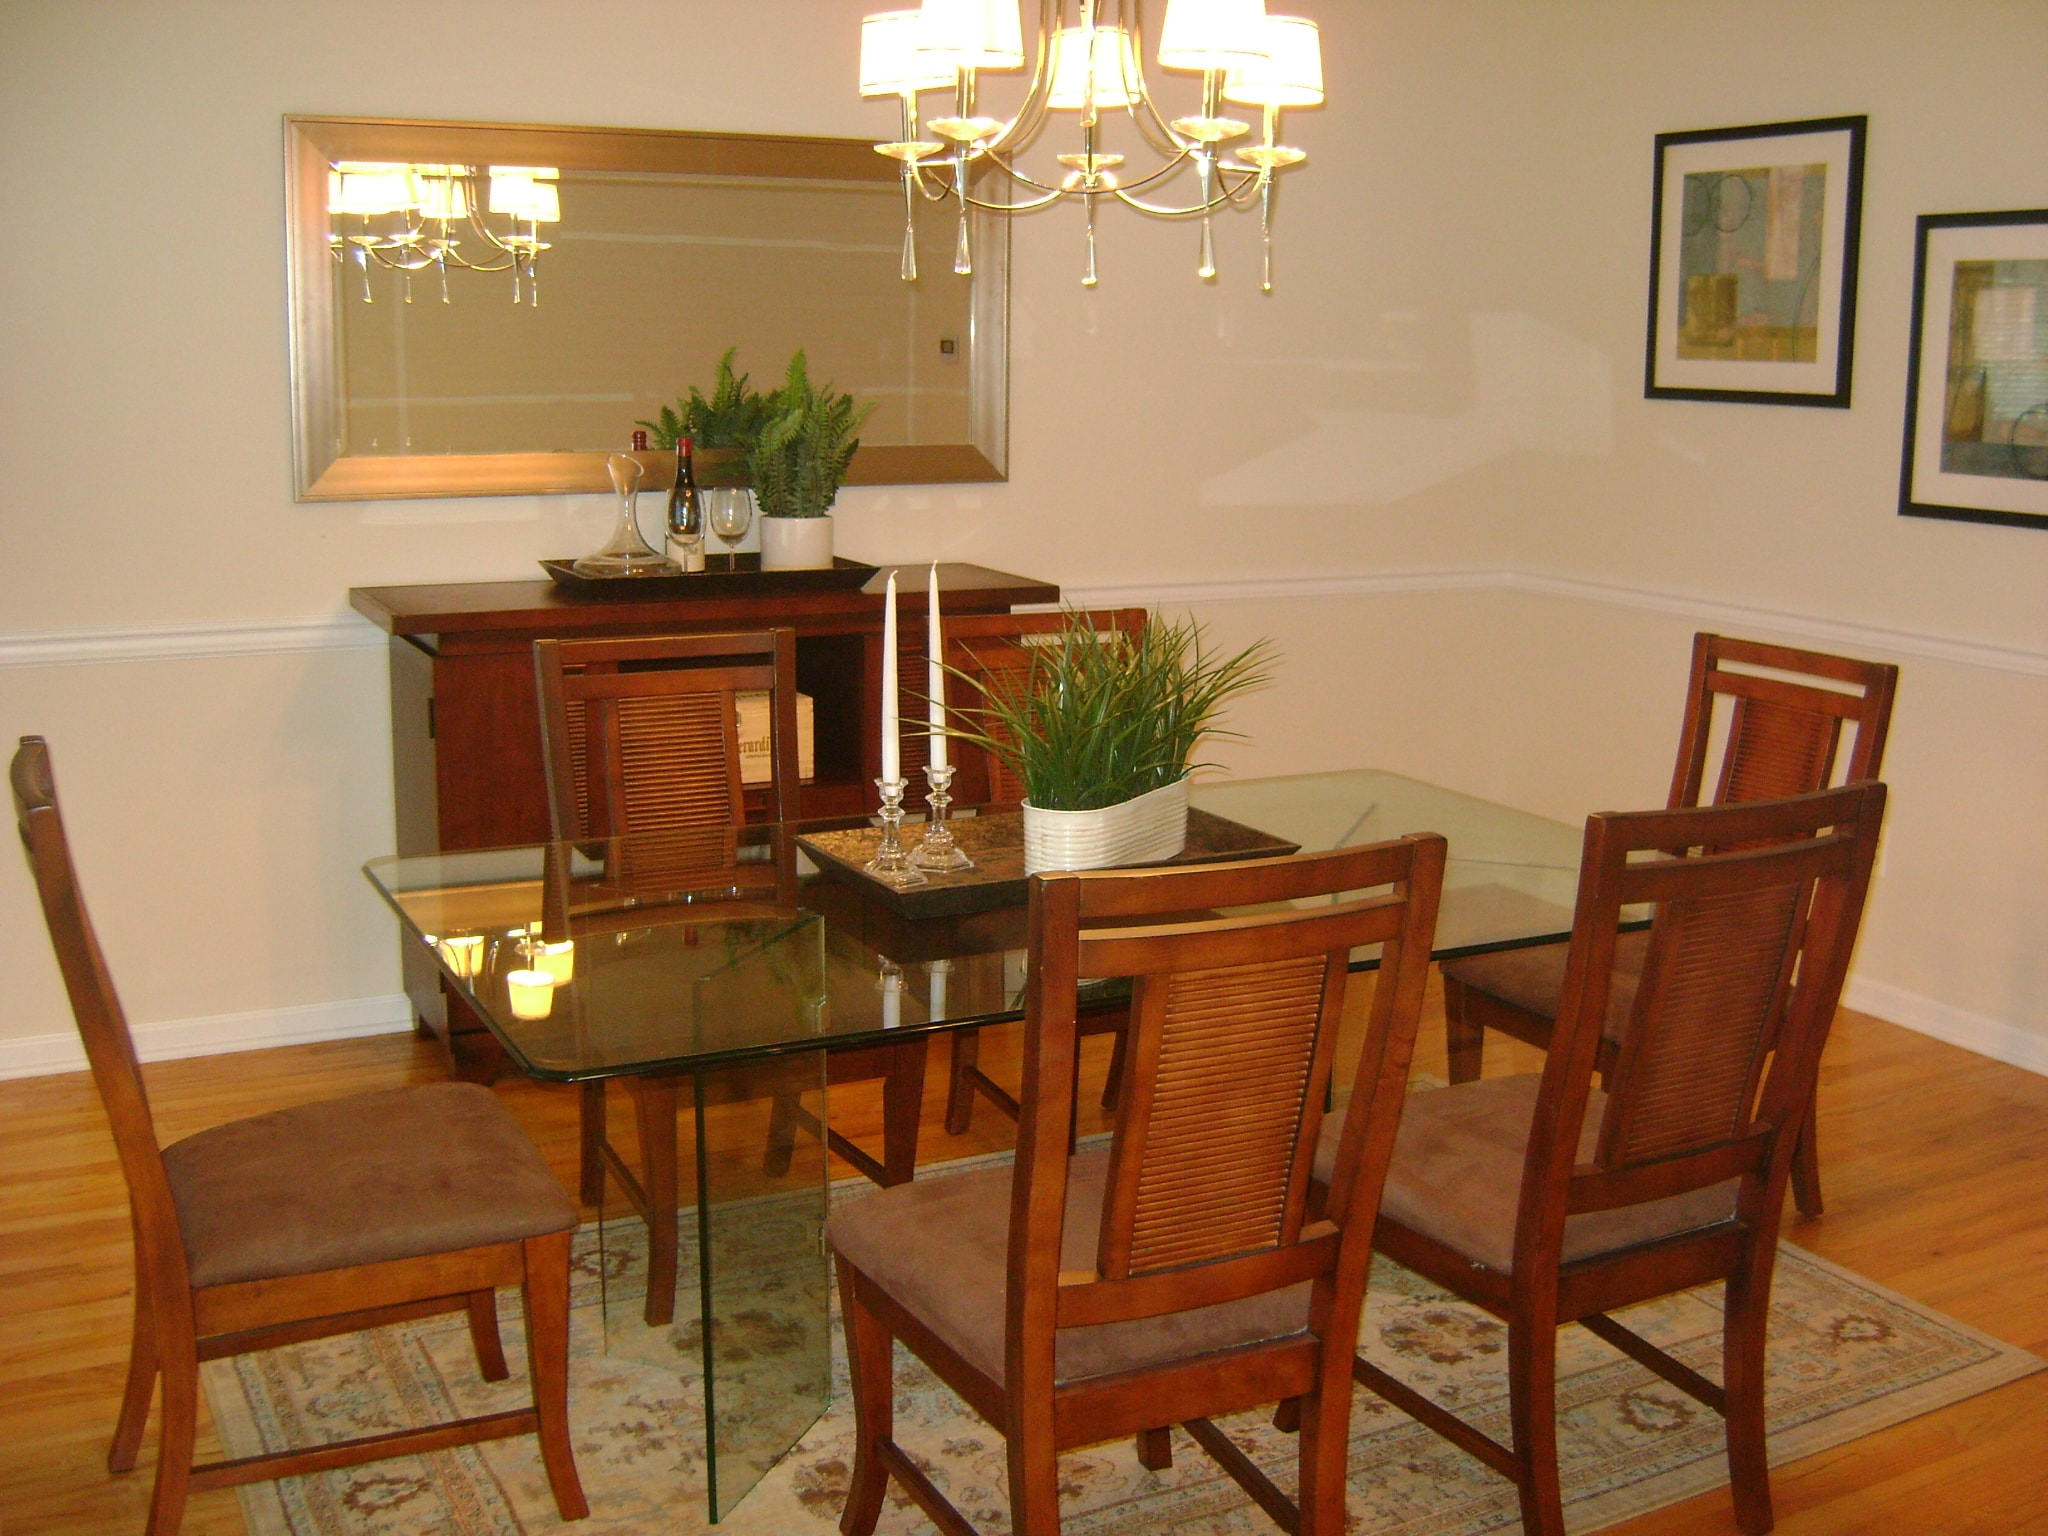 Wooden Dining Room - After